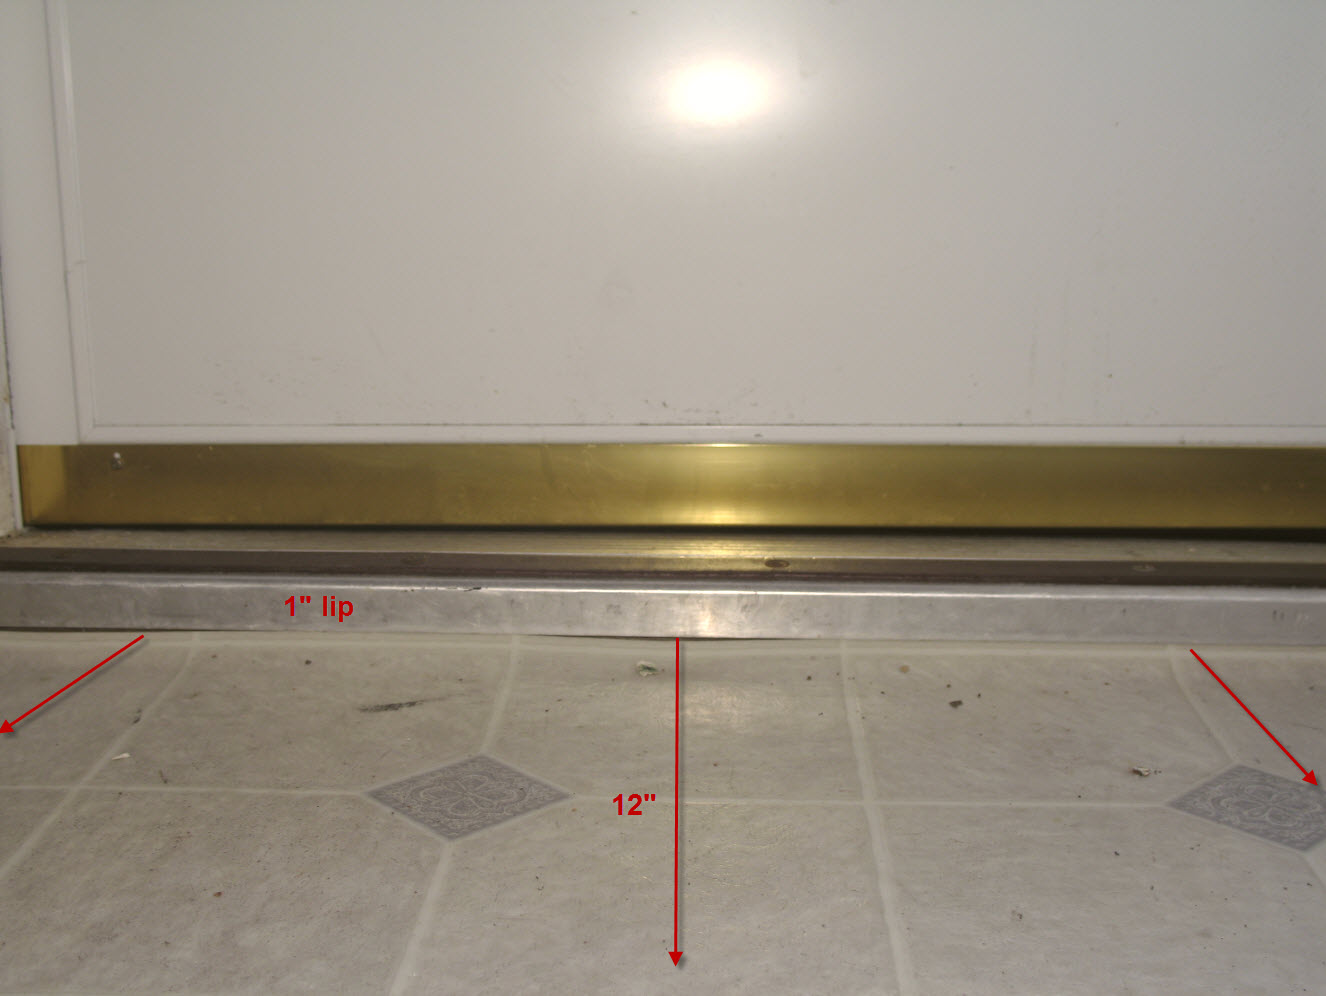 Best Product To Ramp Floor Under Vinyl Sheet Flooring